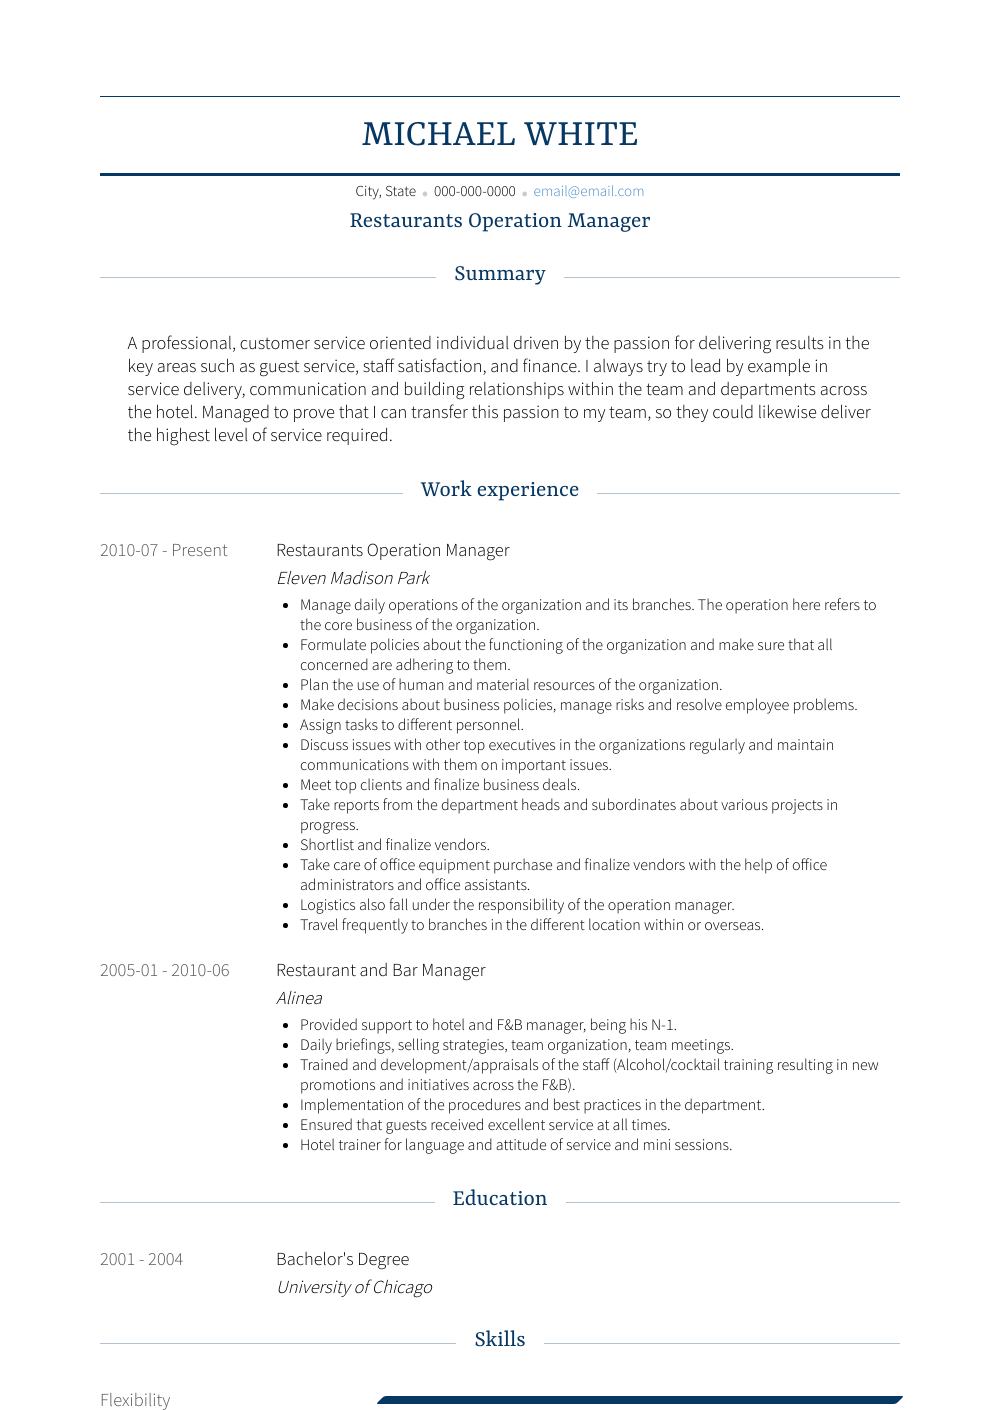 Restaurants Operation Manager Resume Sample and Template